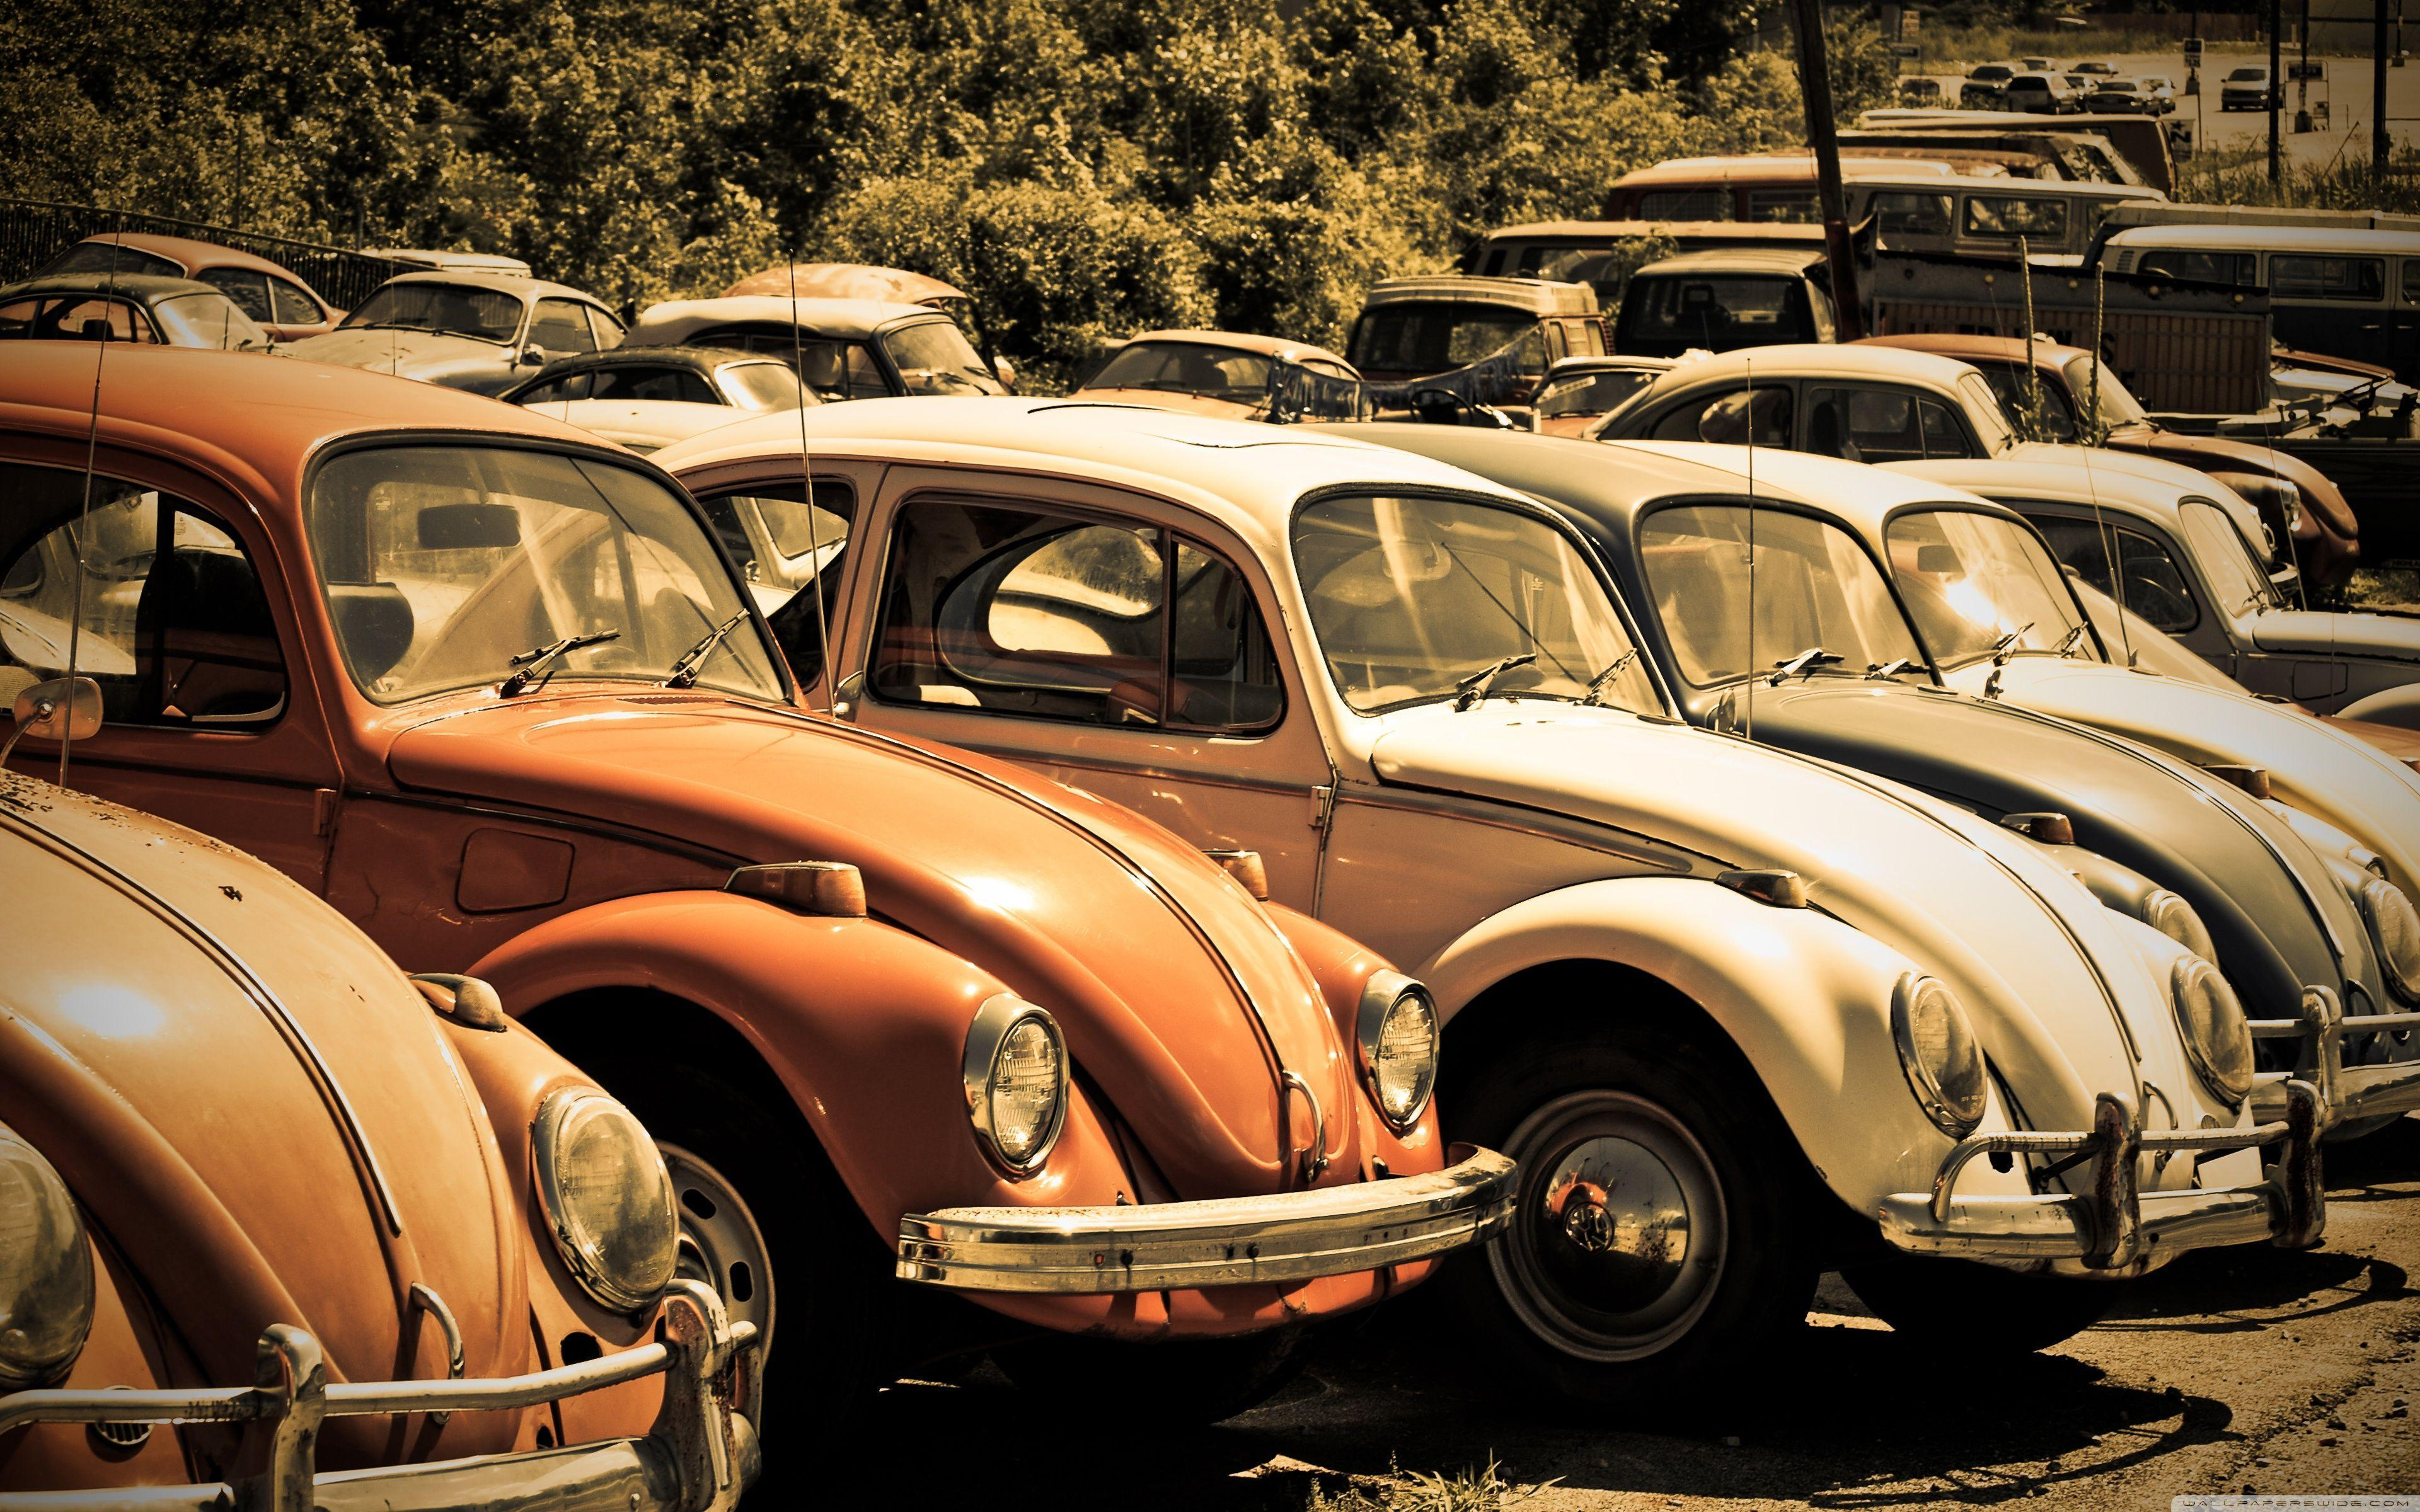 Old Volkswagen Beetle Junkyard HD desktop wallpapers : High